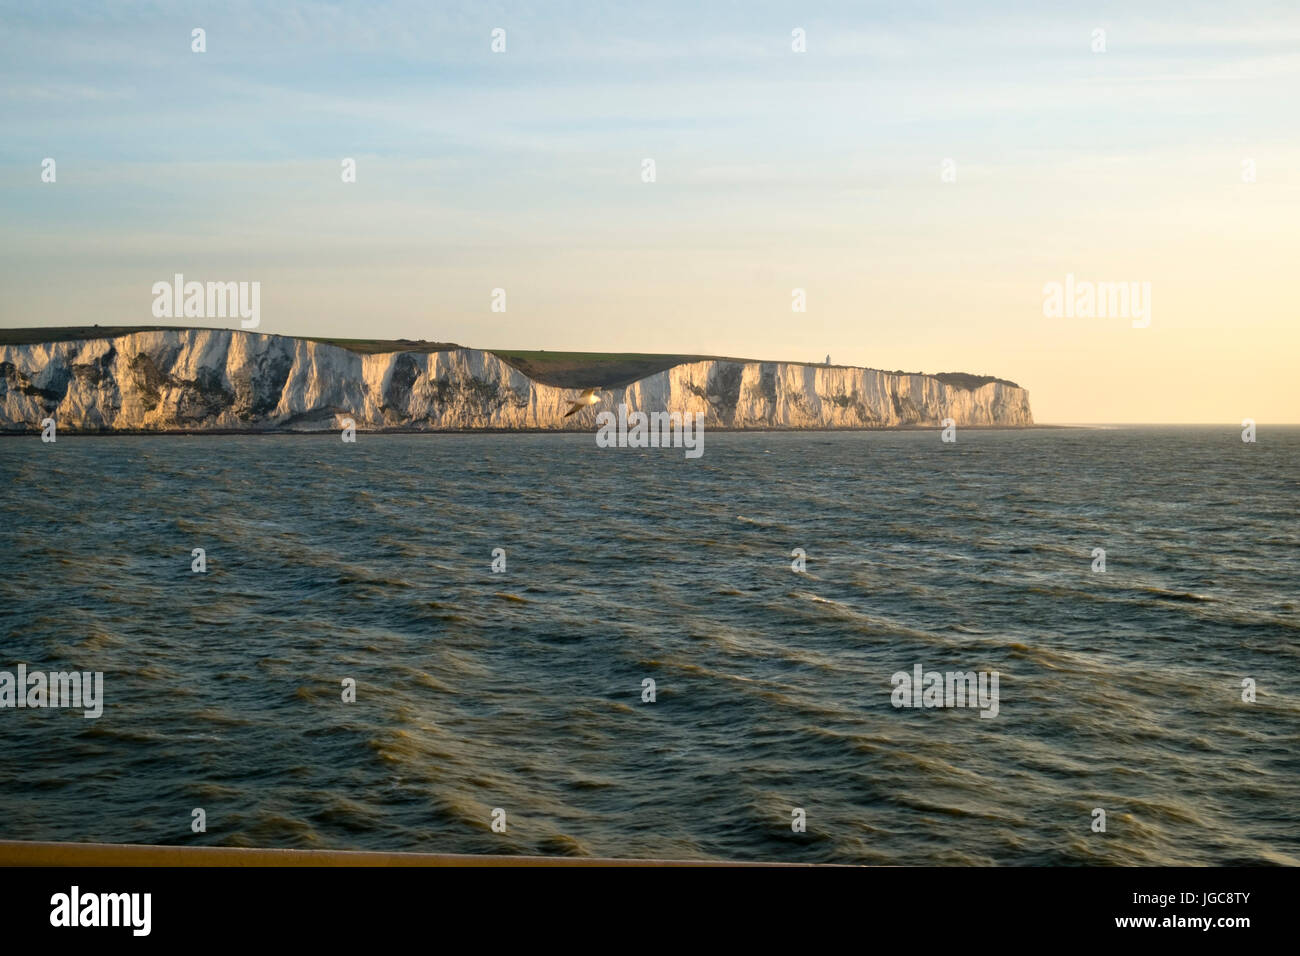 An early morning cross channel ferry passes the white cliffs of Dover, Kent, UK heading for Calais, France. - Stock Image